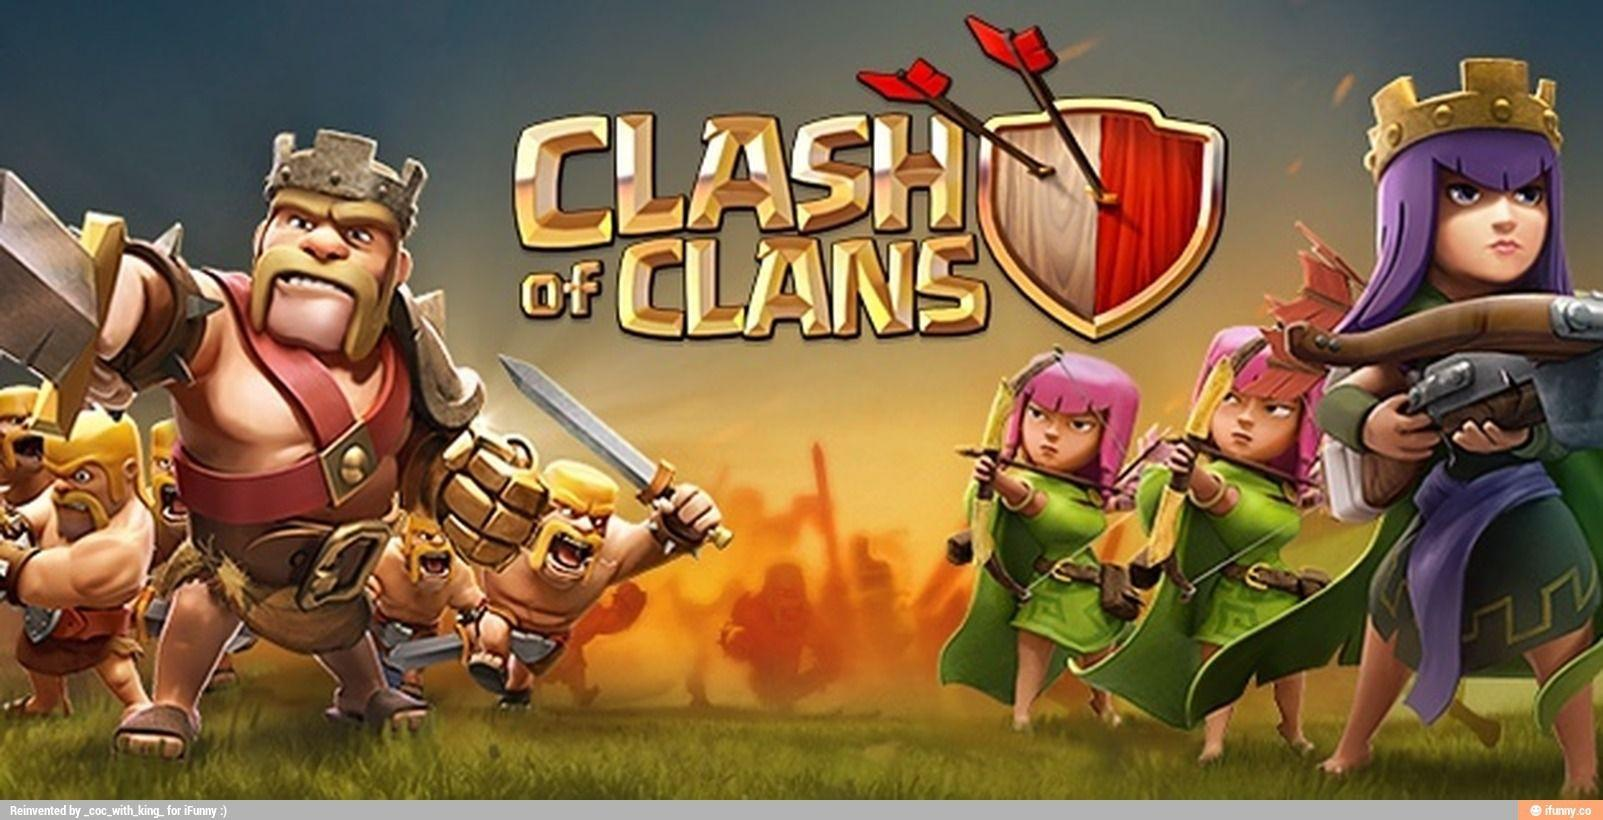 Extrêmement Clash Of Clans Wallpapers - Wallpaper Cave NB03